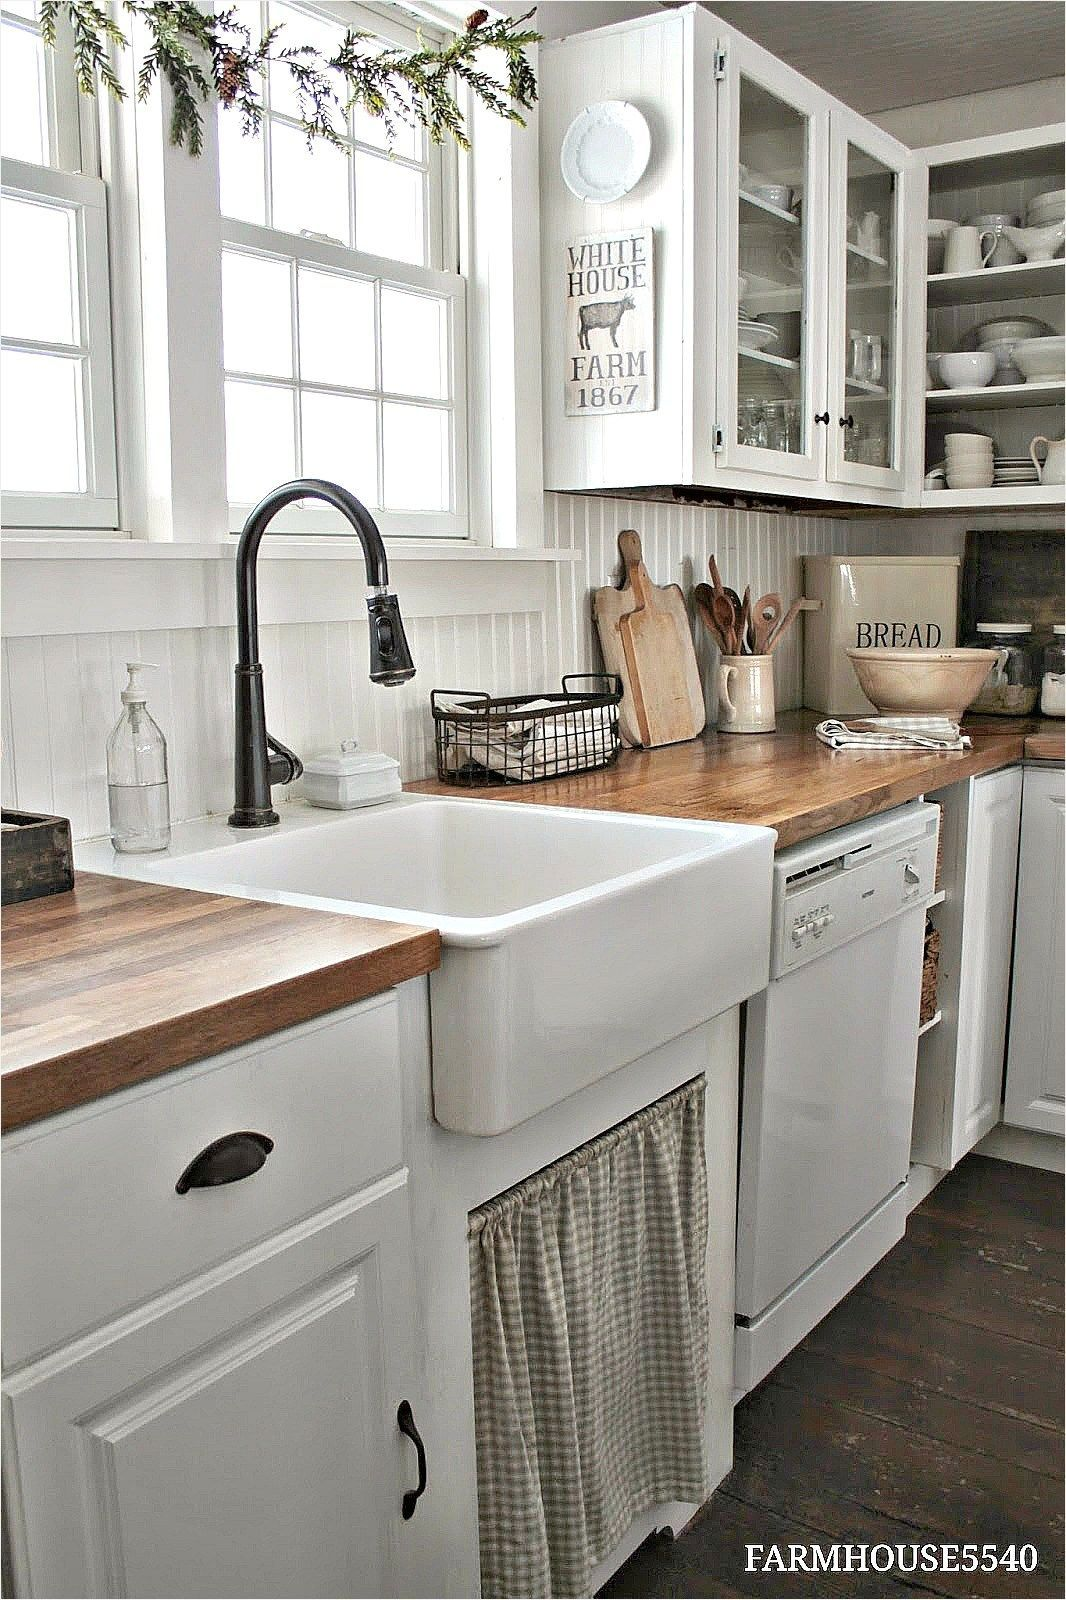 45 Perfect Farmhouse Small Kitchen Ideas 33 Farmhouse Kitchen Decor Ideas The 36t Farmhouse Kitchen Backsplash Rustic Farmhouse Kitchen Farmhouse Style Kitchen